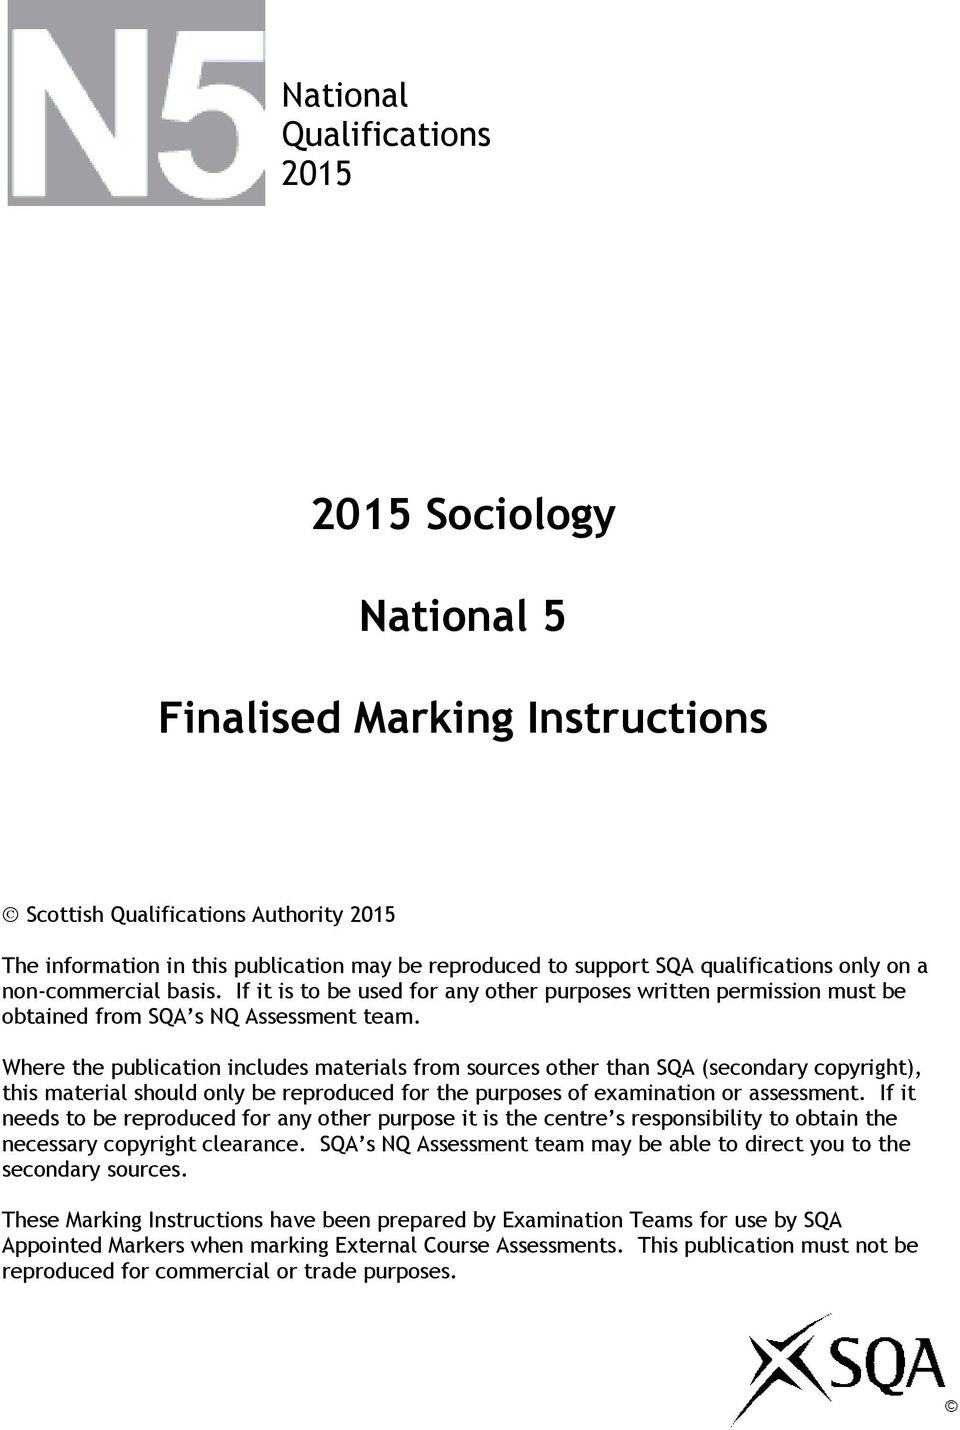 Where the publication includes materials from sources other than SQA (secondary copyright), this material should only be reproduced for the purposes of examination or assessment.